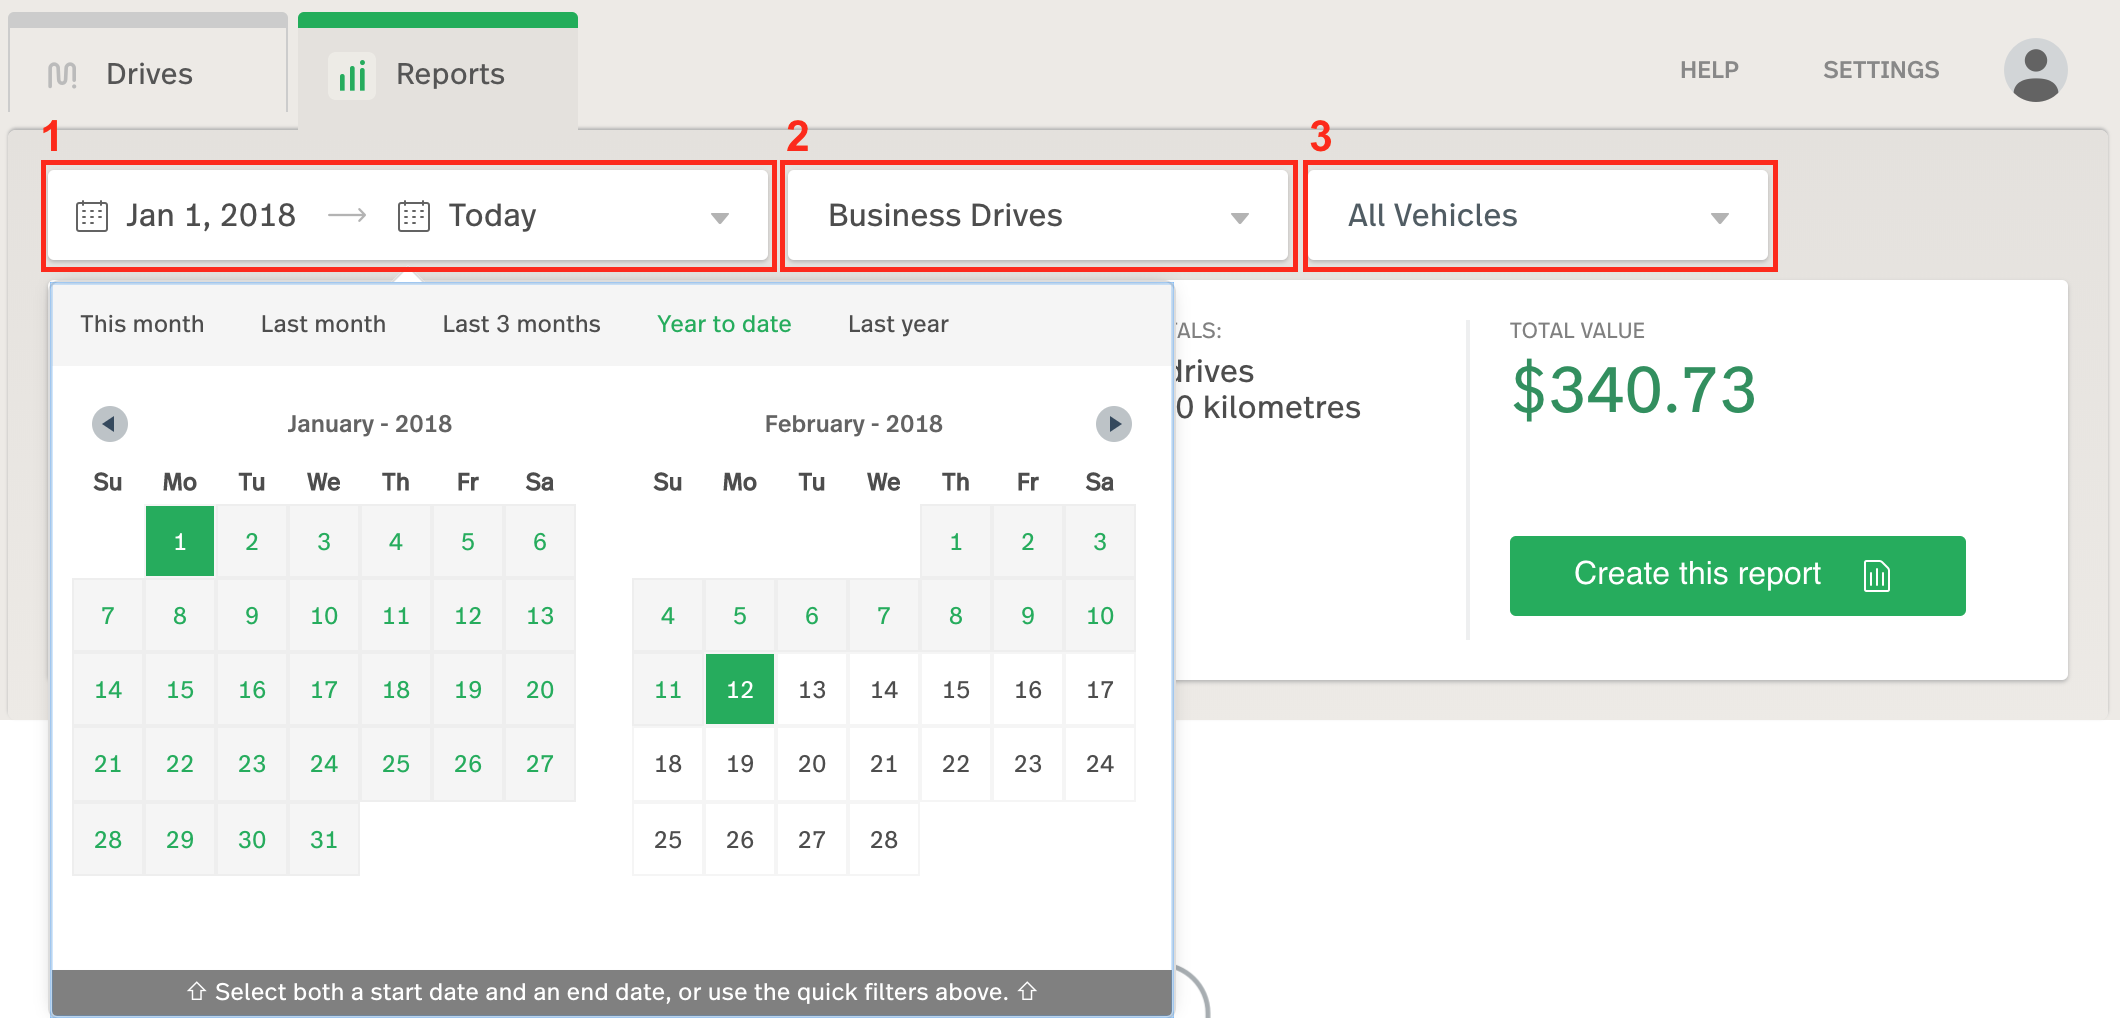 This image shows the Reports View. The date selector, drive selector, and vehicle selector are outlined in order.